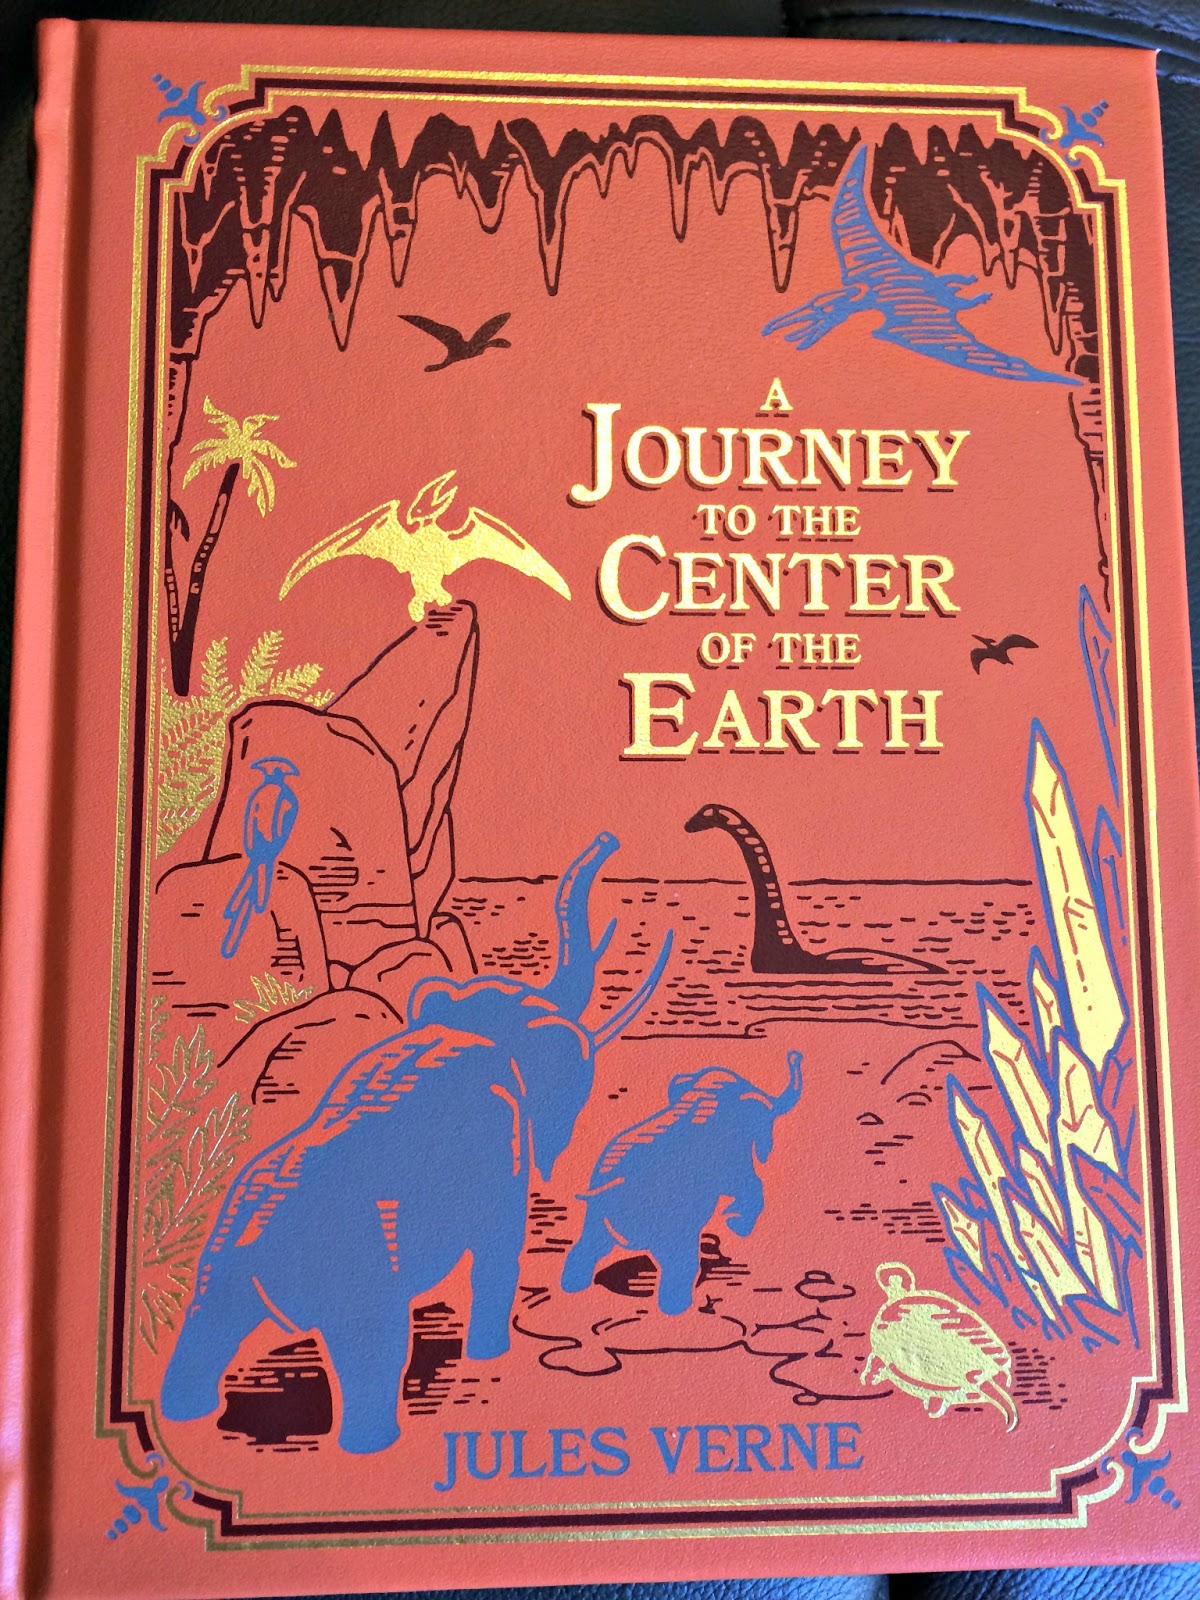 a review of a journey to the center of the earth by jules verne Title: journey to the center of the earth author: jules verne published: 1864 genre: historical fiction – western summary: descend into the crater once an ancient book is opened by the.